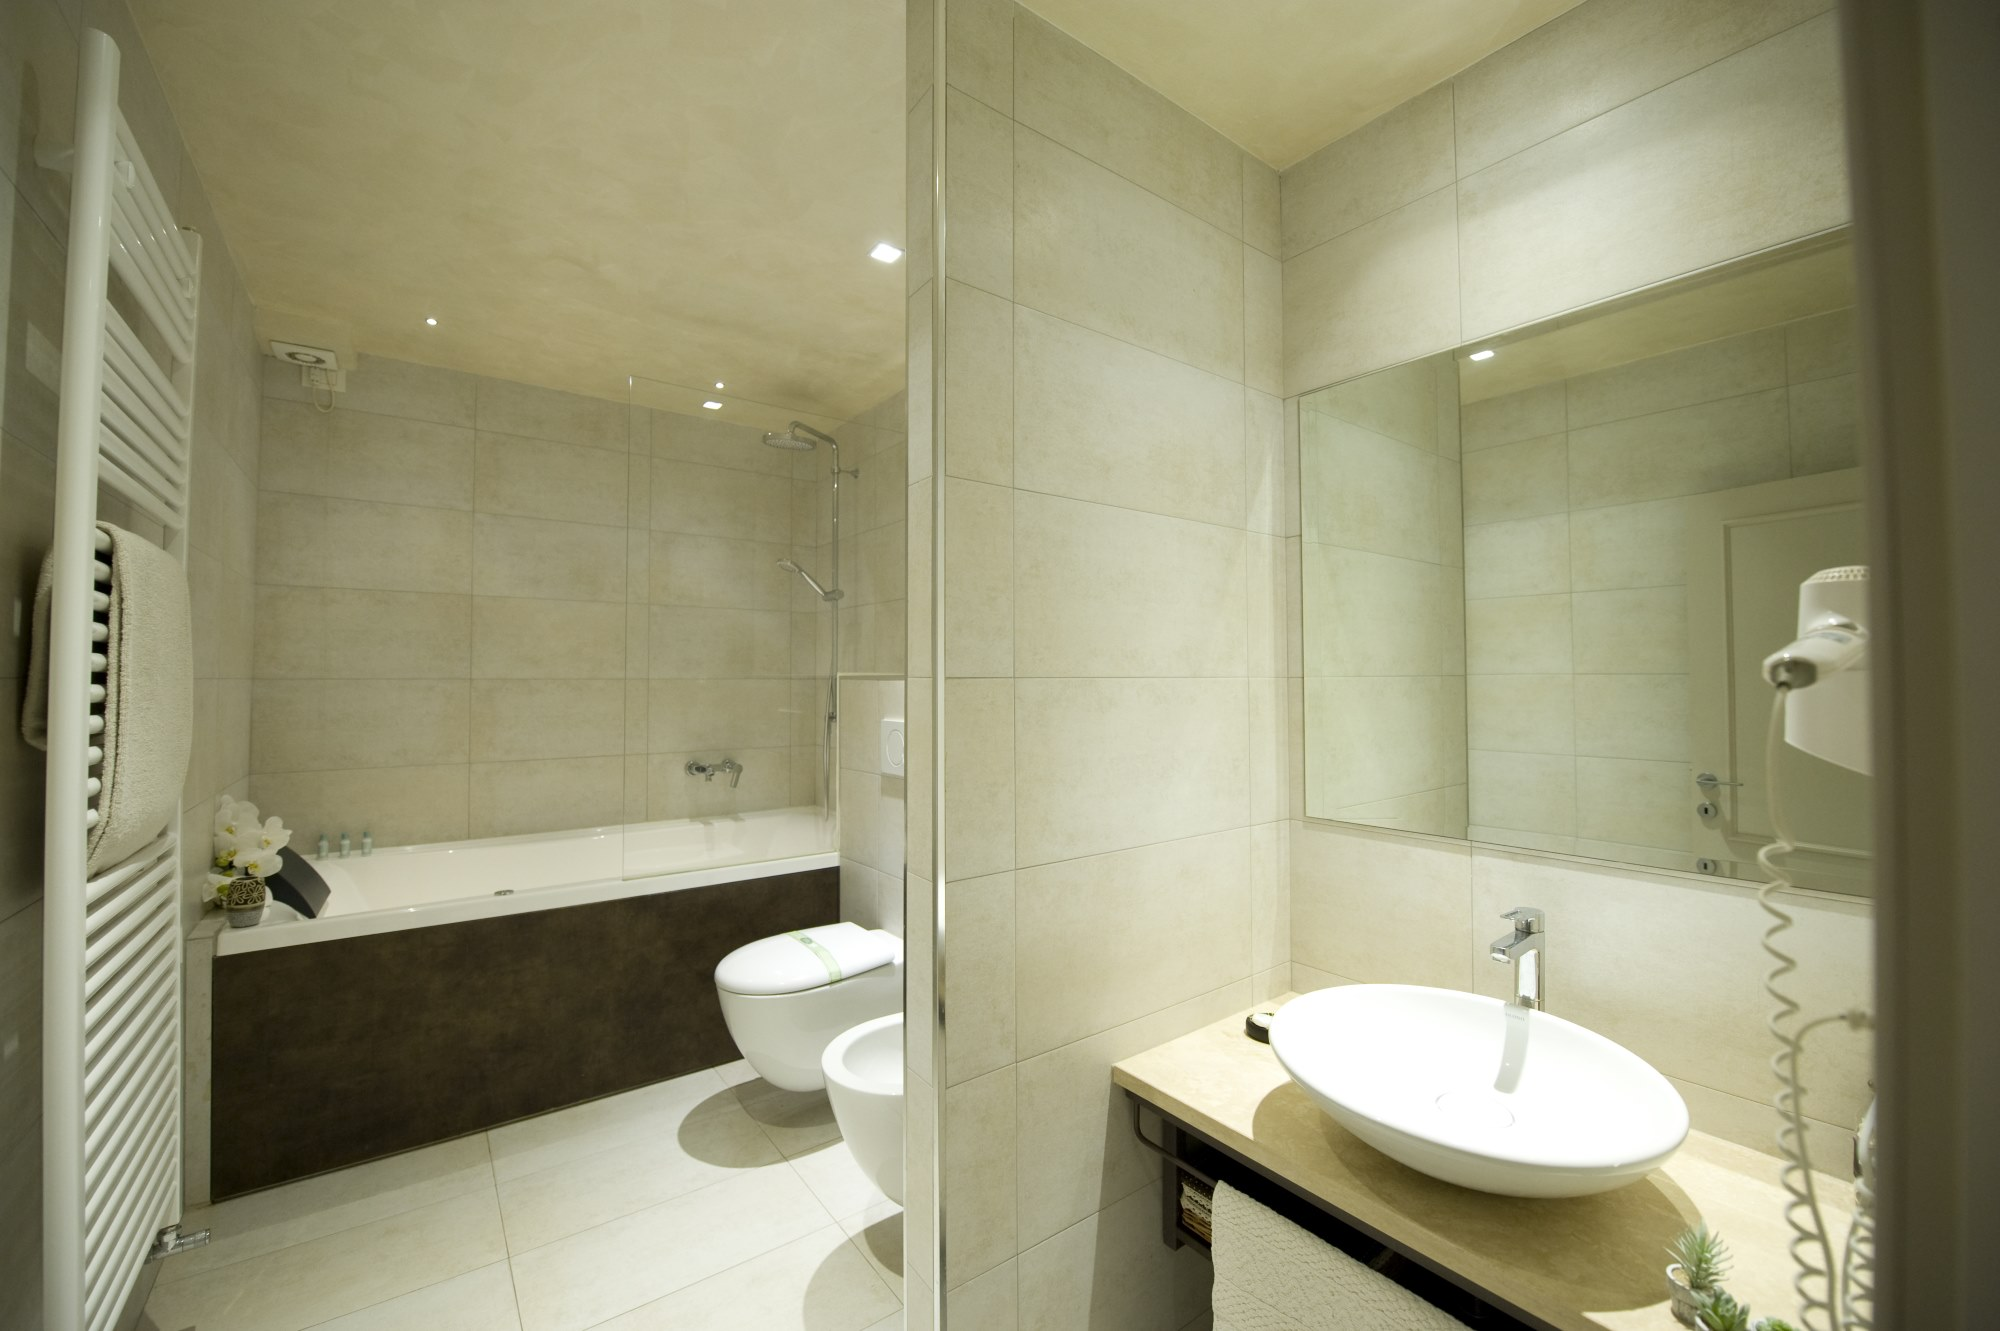 Italian Bathroom Suites Italian Wedding Villas Perugia Suite Villa San Crispolto